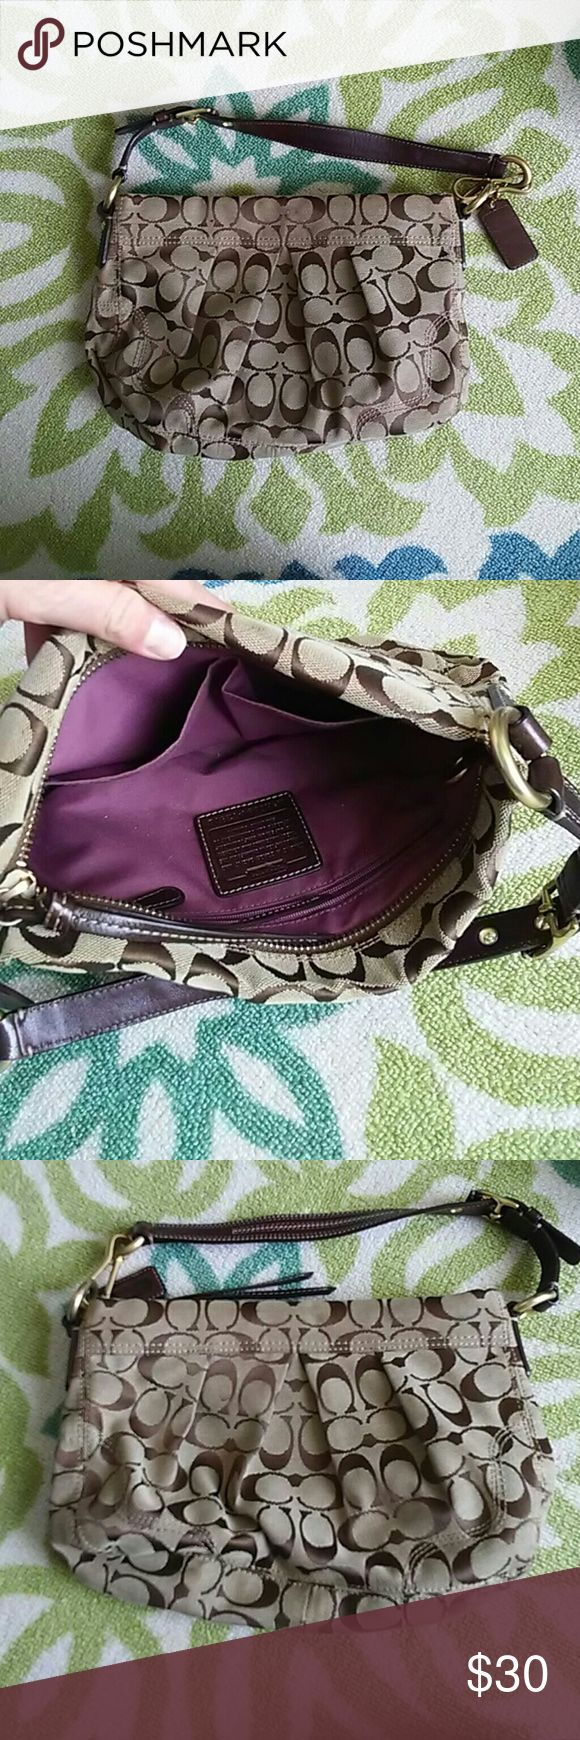 Coach Signature C Brown Purse Purple Lining Beautiful Signature C brown Coach purse with elegant pleating of the fabric. Has a beautiful maroon lining with two drop tech pockets and one zippered pocket. Some wear on inside, small spot on back, and bottom of purse. Please see pictures.  FAST NEXT DAY SHIPPING! Smoke/Pet free Home! 3+ Bundle=Discount Coach Bags